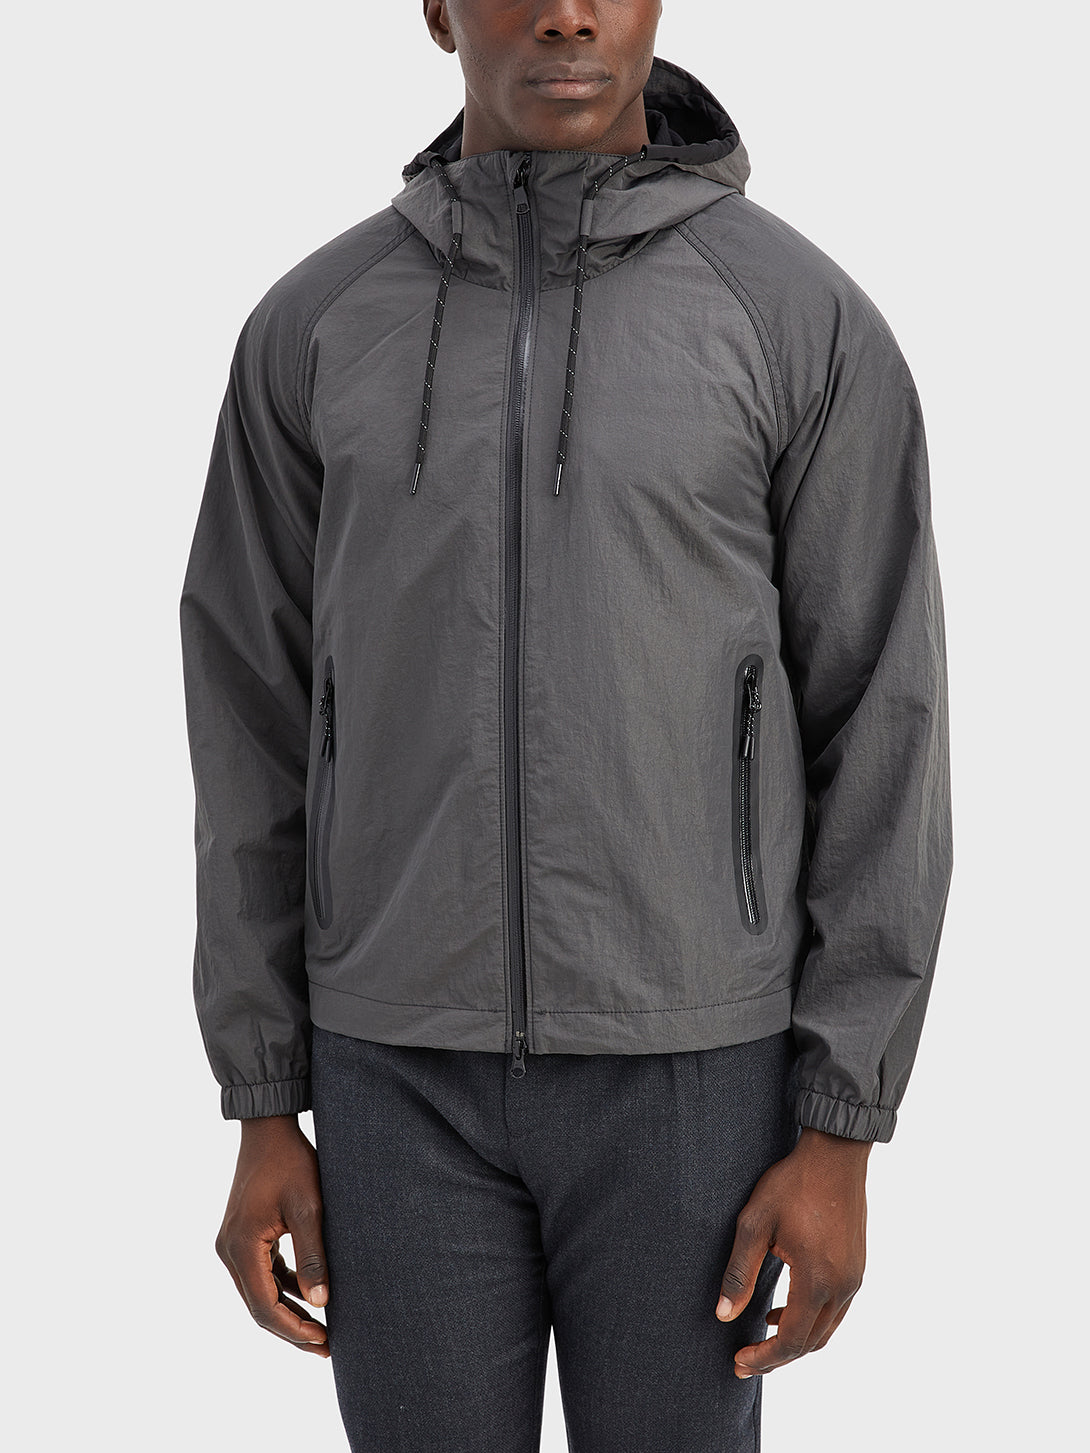 black friday deals ONS Clothing Men's ENVOY JACKET in DK GREY